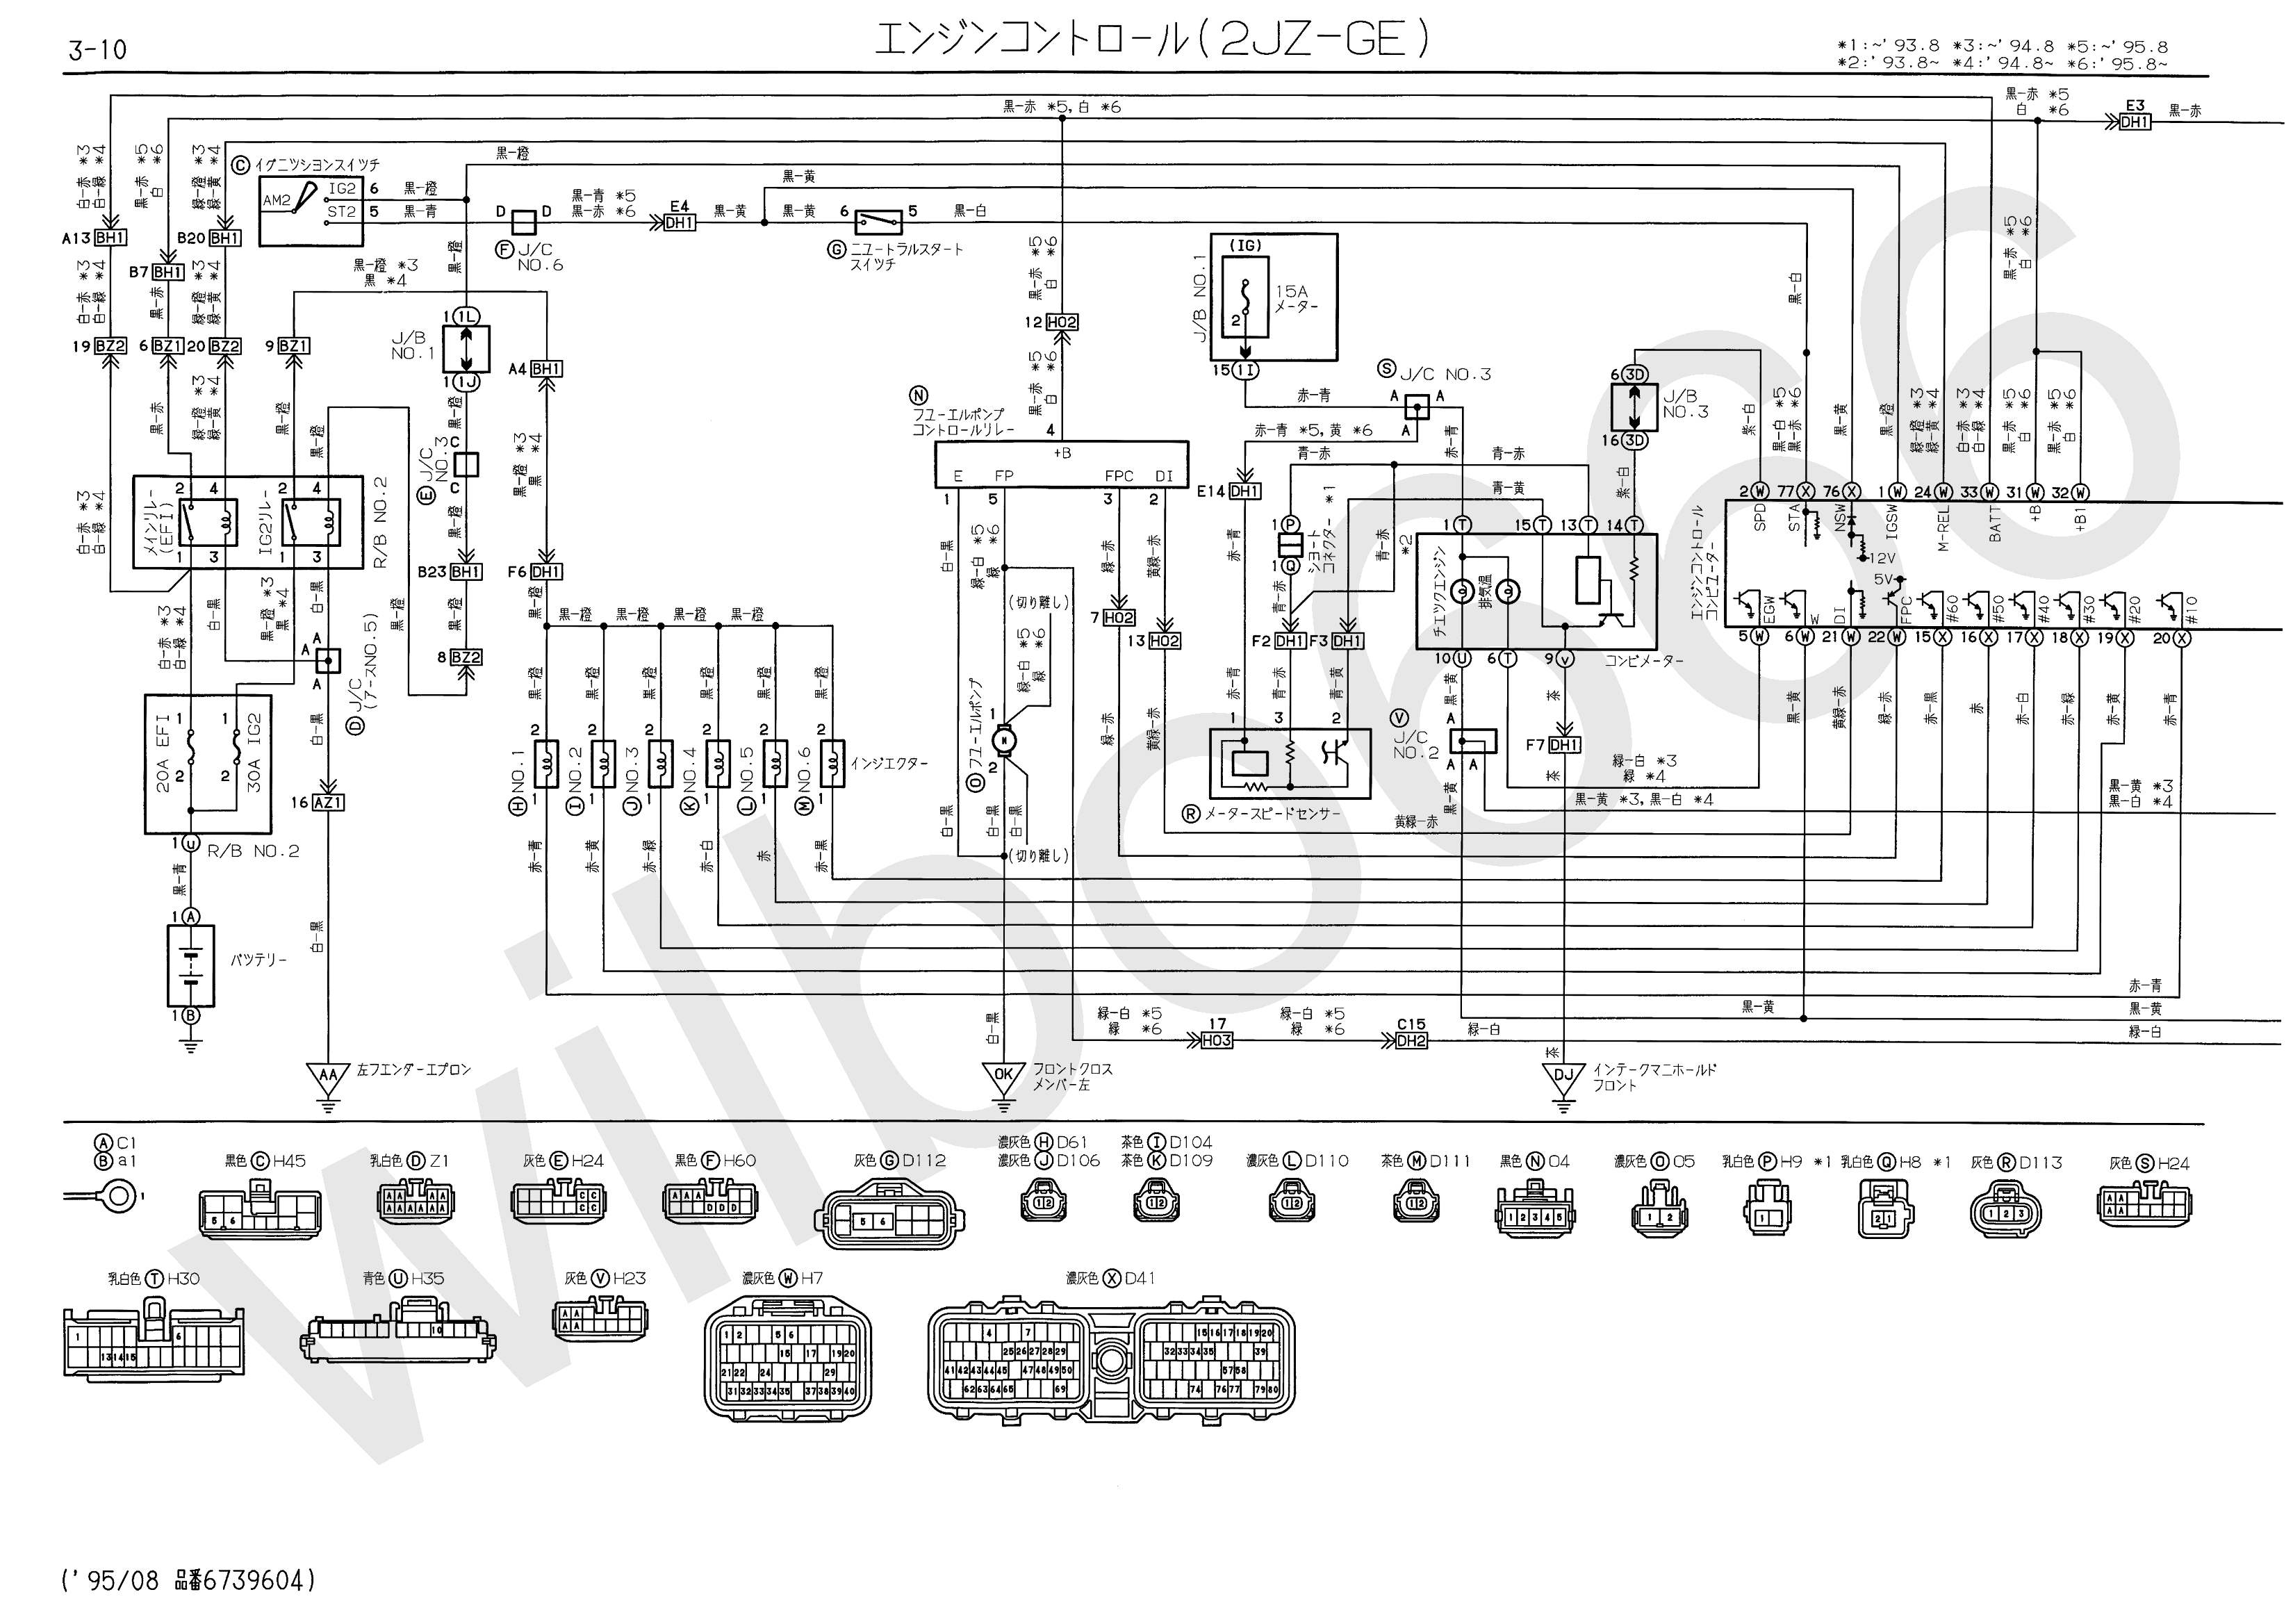 2001 Buick Regal Wiring Diagram, 2001, Free Engine Image